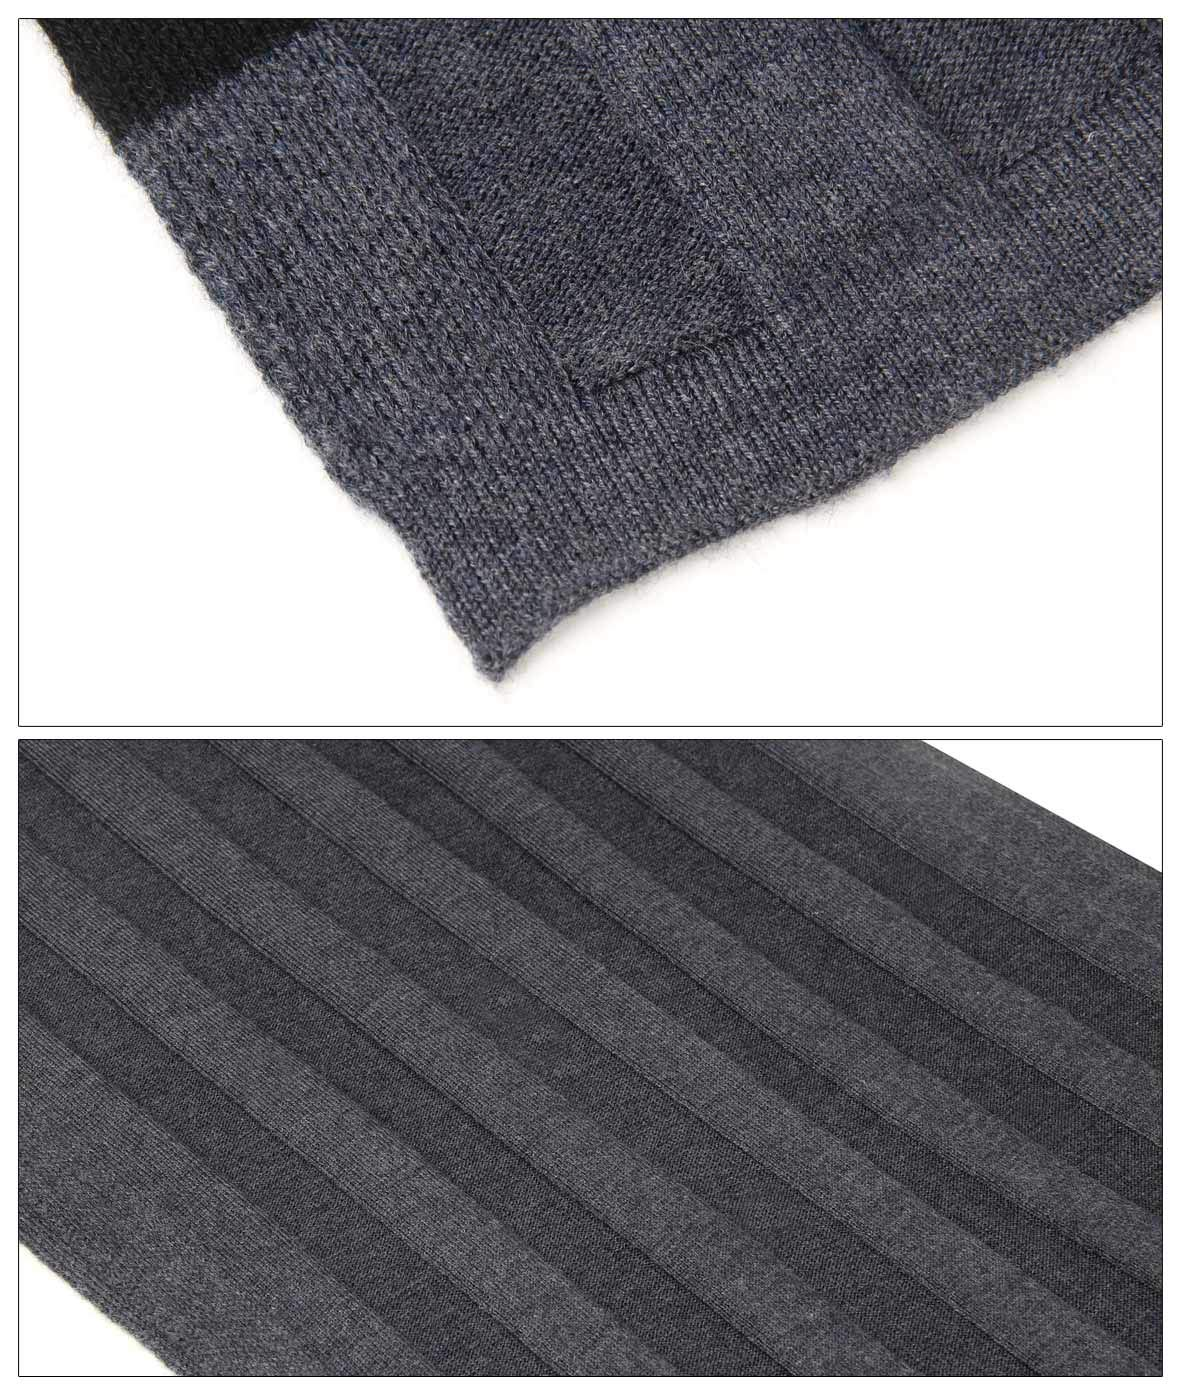 Men Plain Thermal Scarf Knitted Striped Winter Scarves One Size Leisure Business Men Warm Neckerchief Gray by Panegy (Image #8)